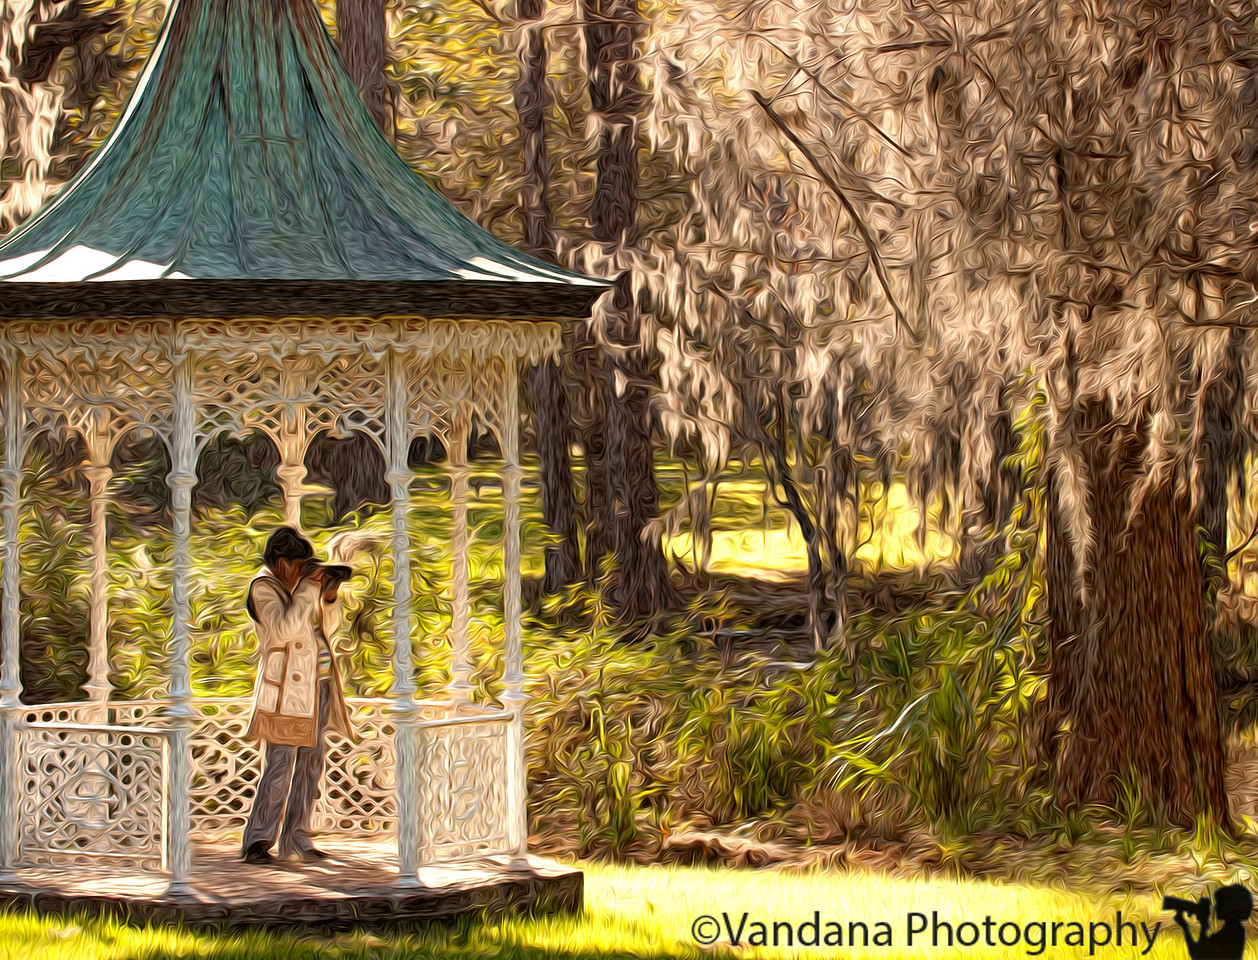 January 20, 2012 - Shooting at Magnolia Gardens ( pixel bender used !) - 26+ weeks pregnant V